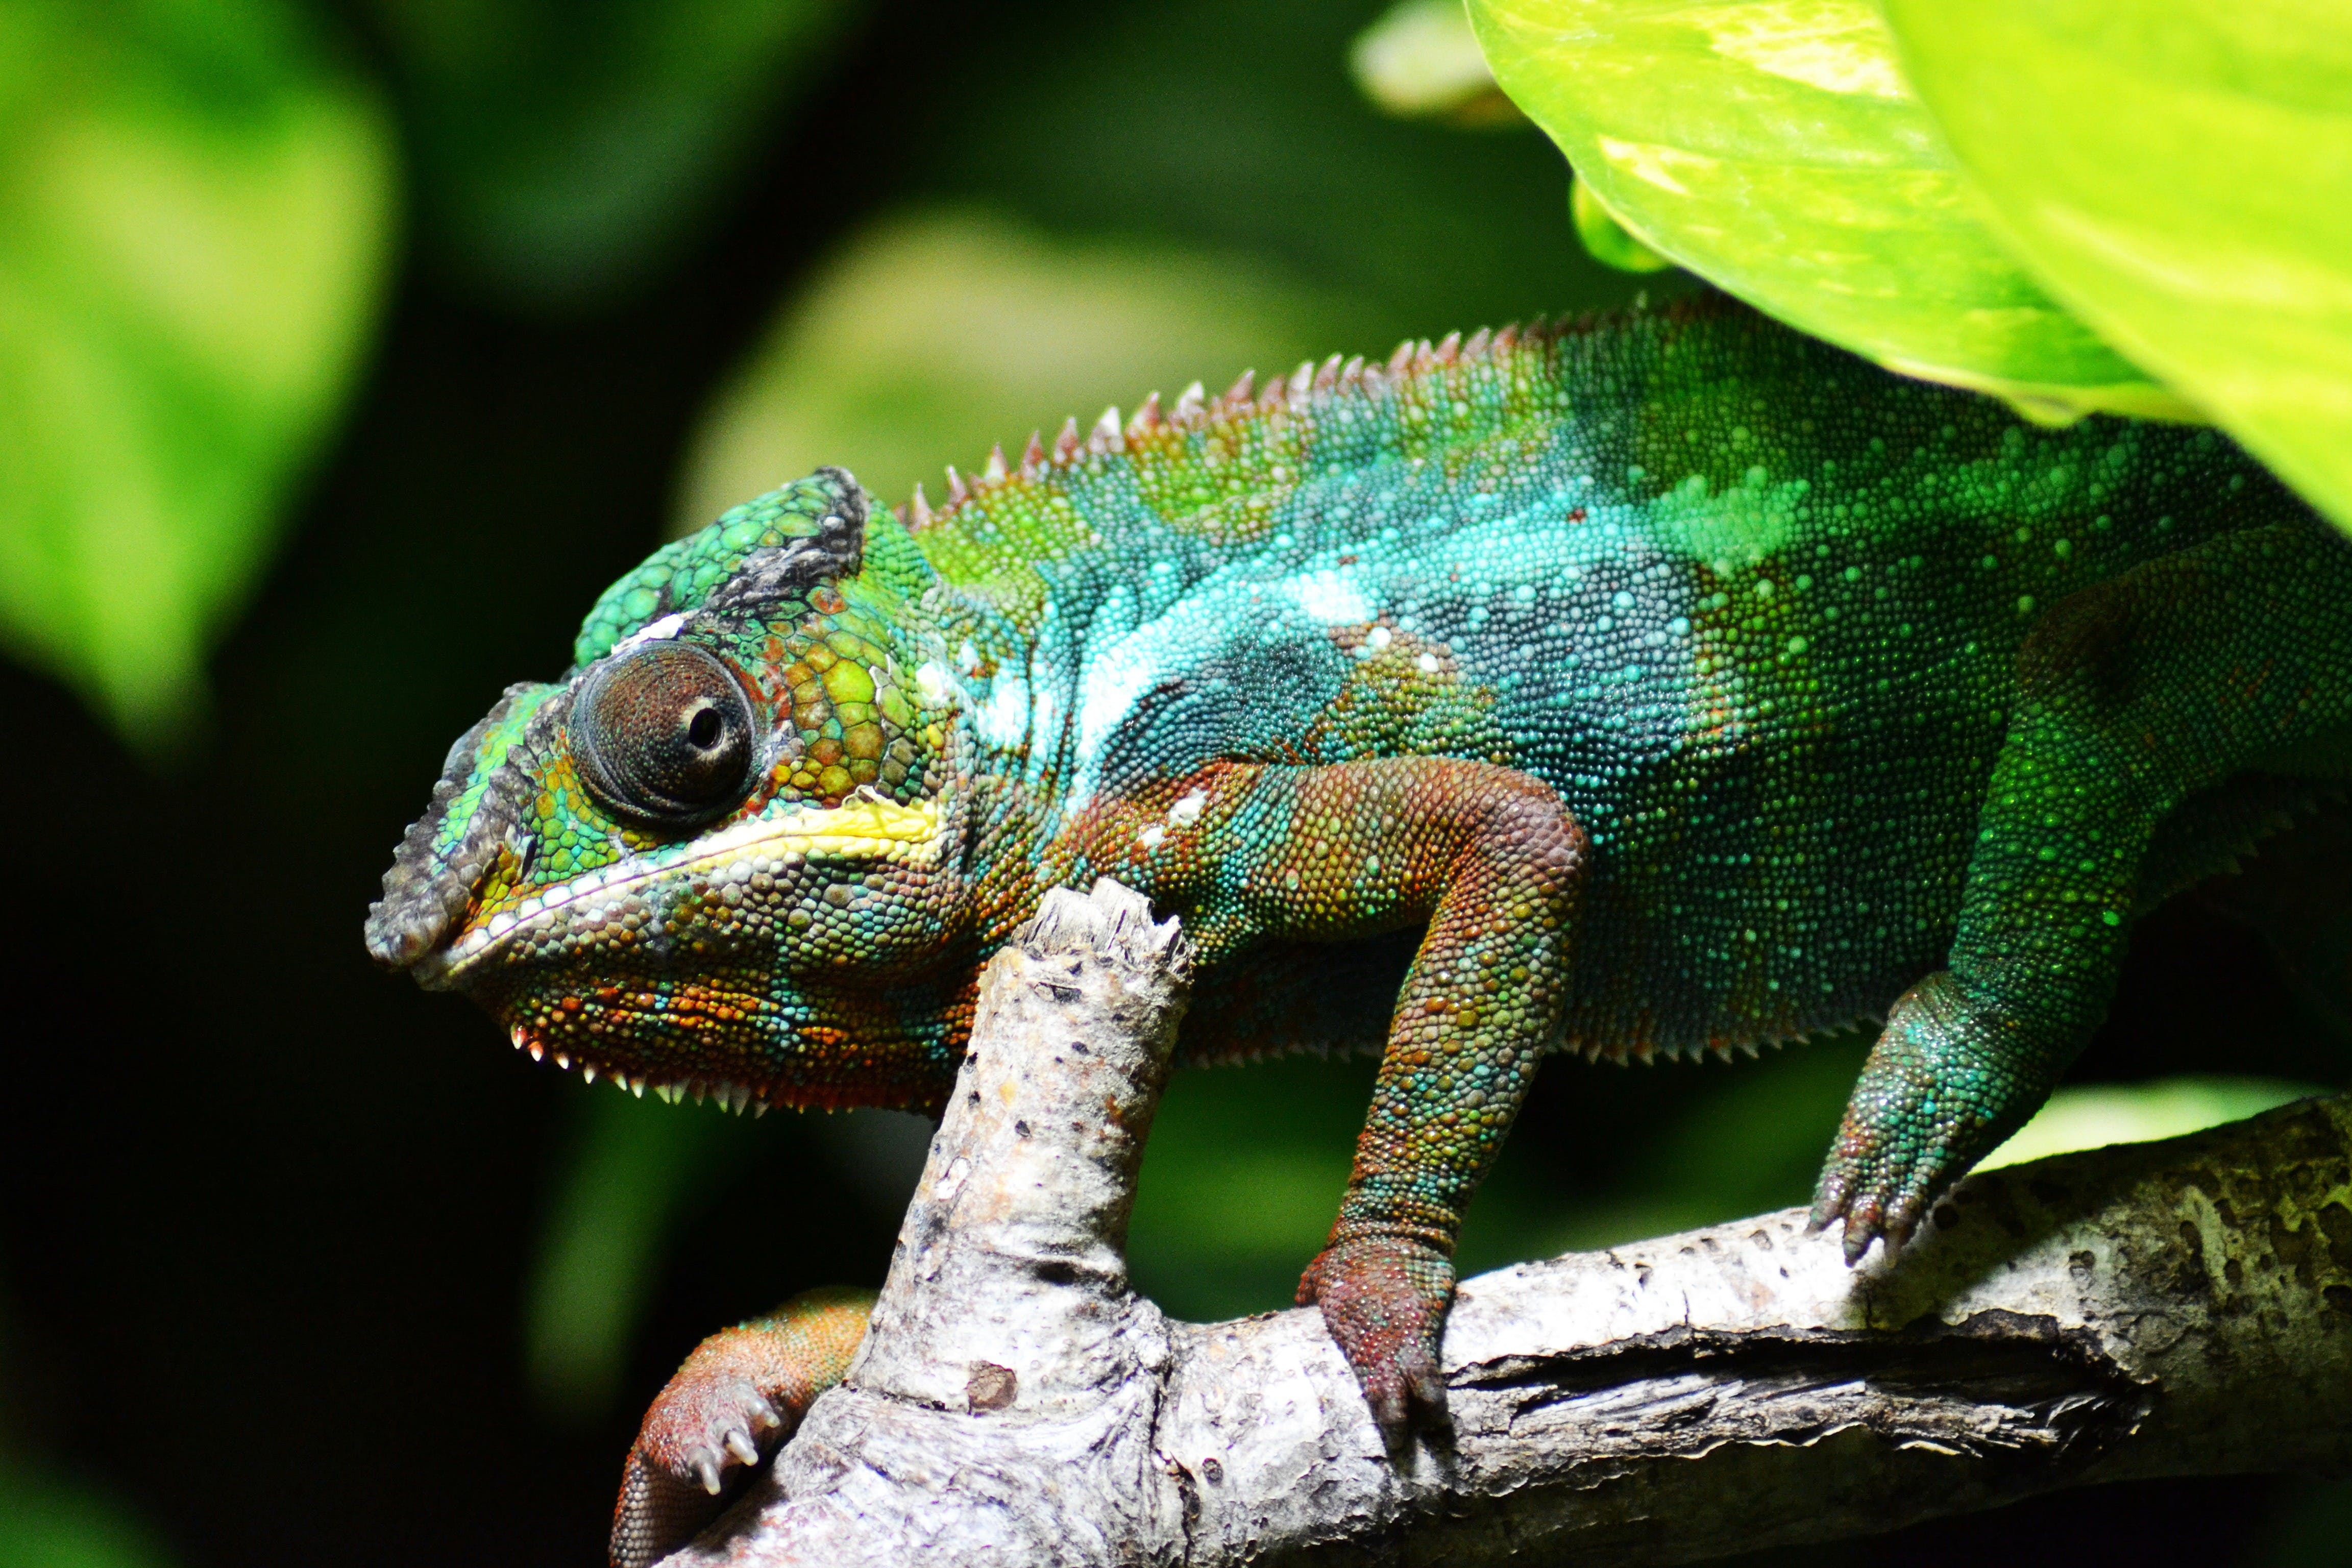 Chameleon on Brown Tree Branch in Close Up Photo